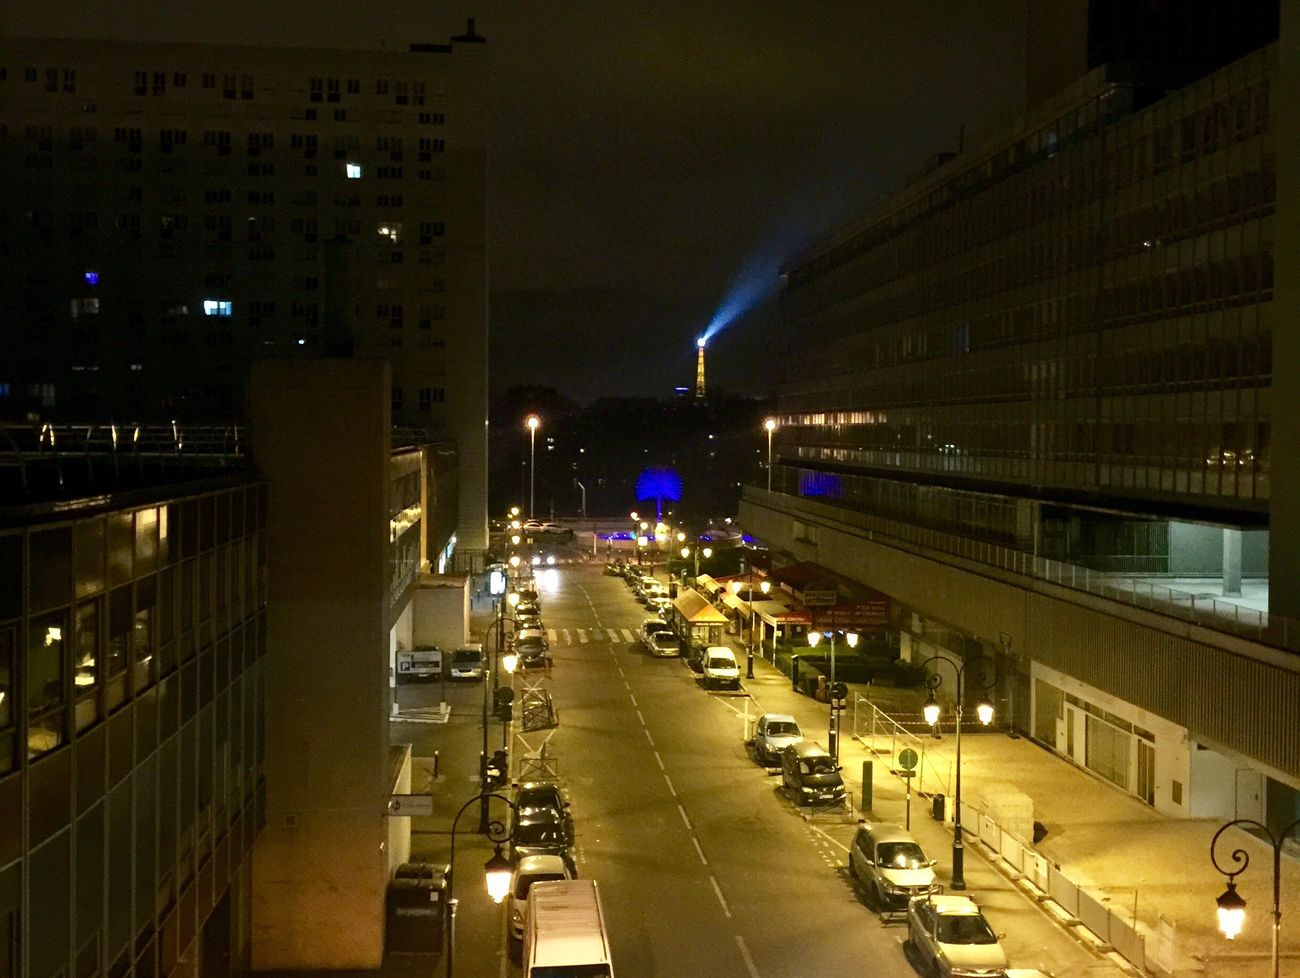 Illuminated Night City Architecture Building Exterior Built Structure Road Outdoors No People Sky Eiffel Tower